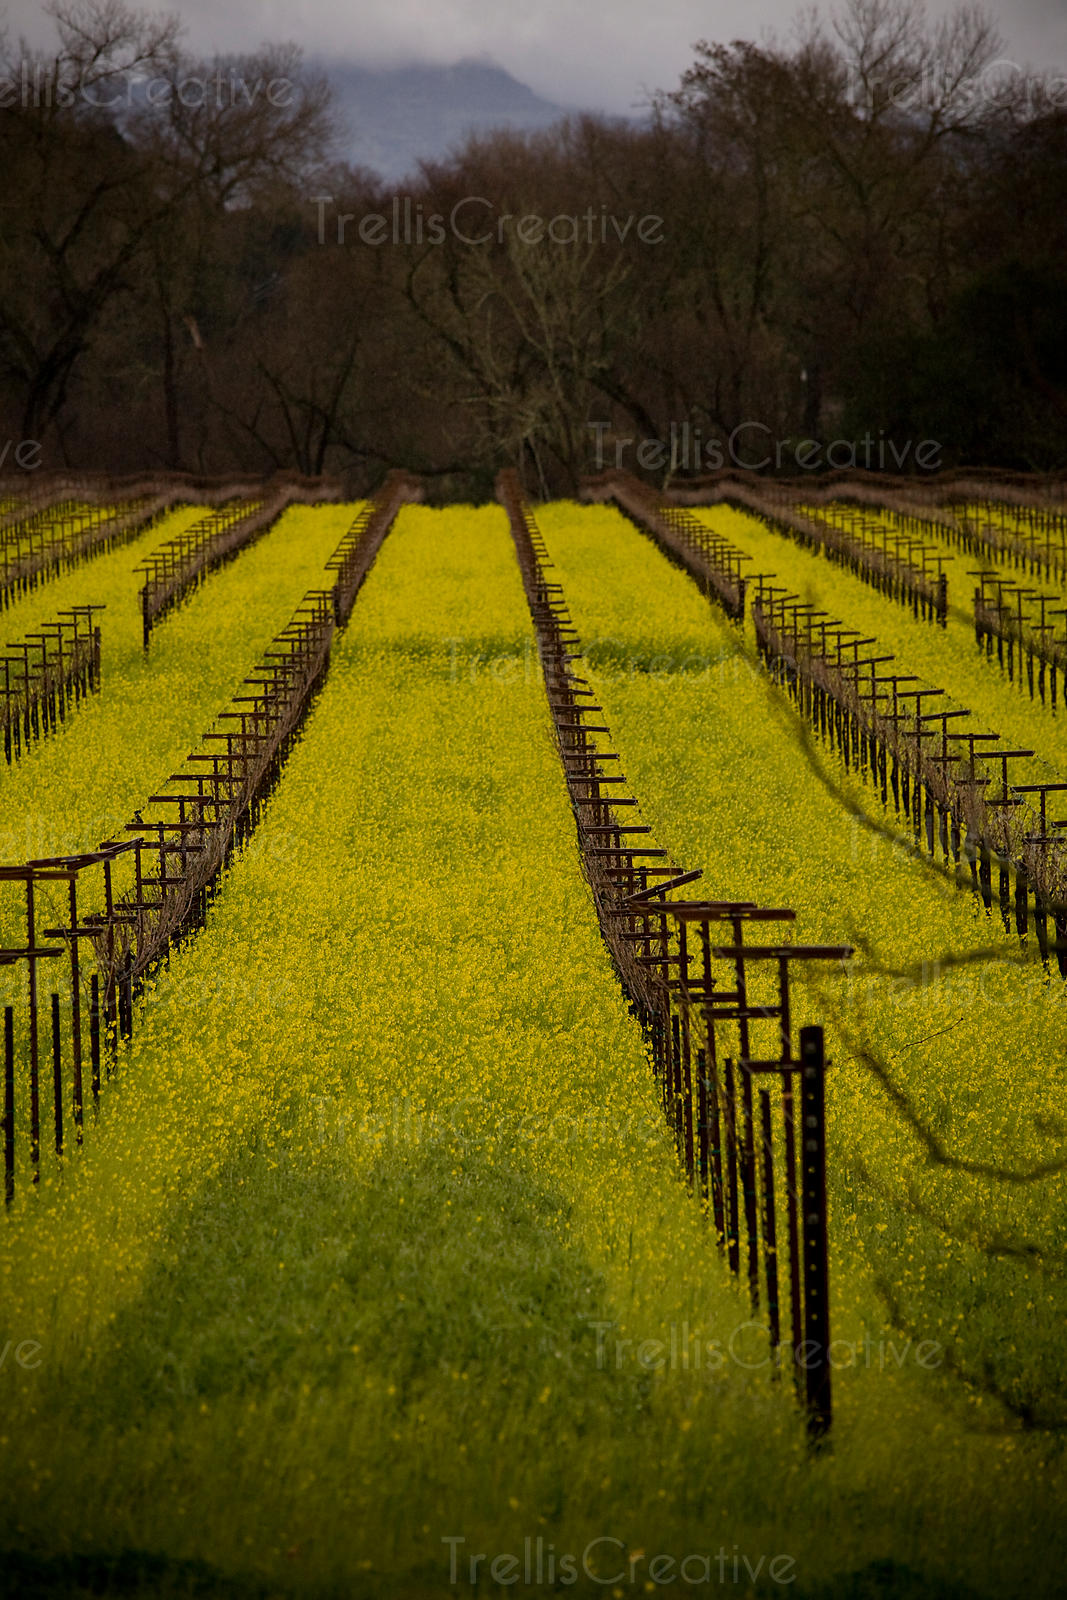 Looking down the row of wild mustard growing in a vineyard